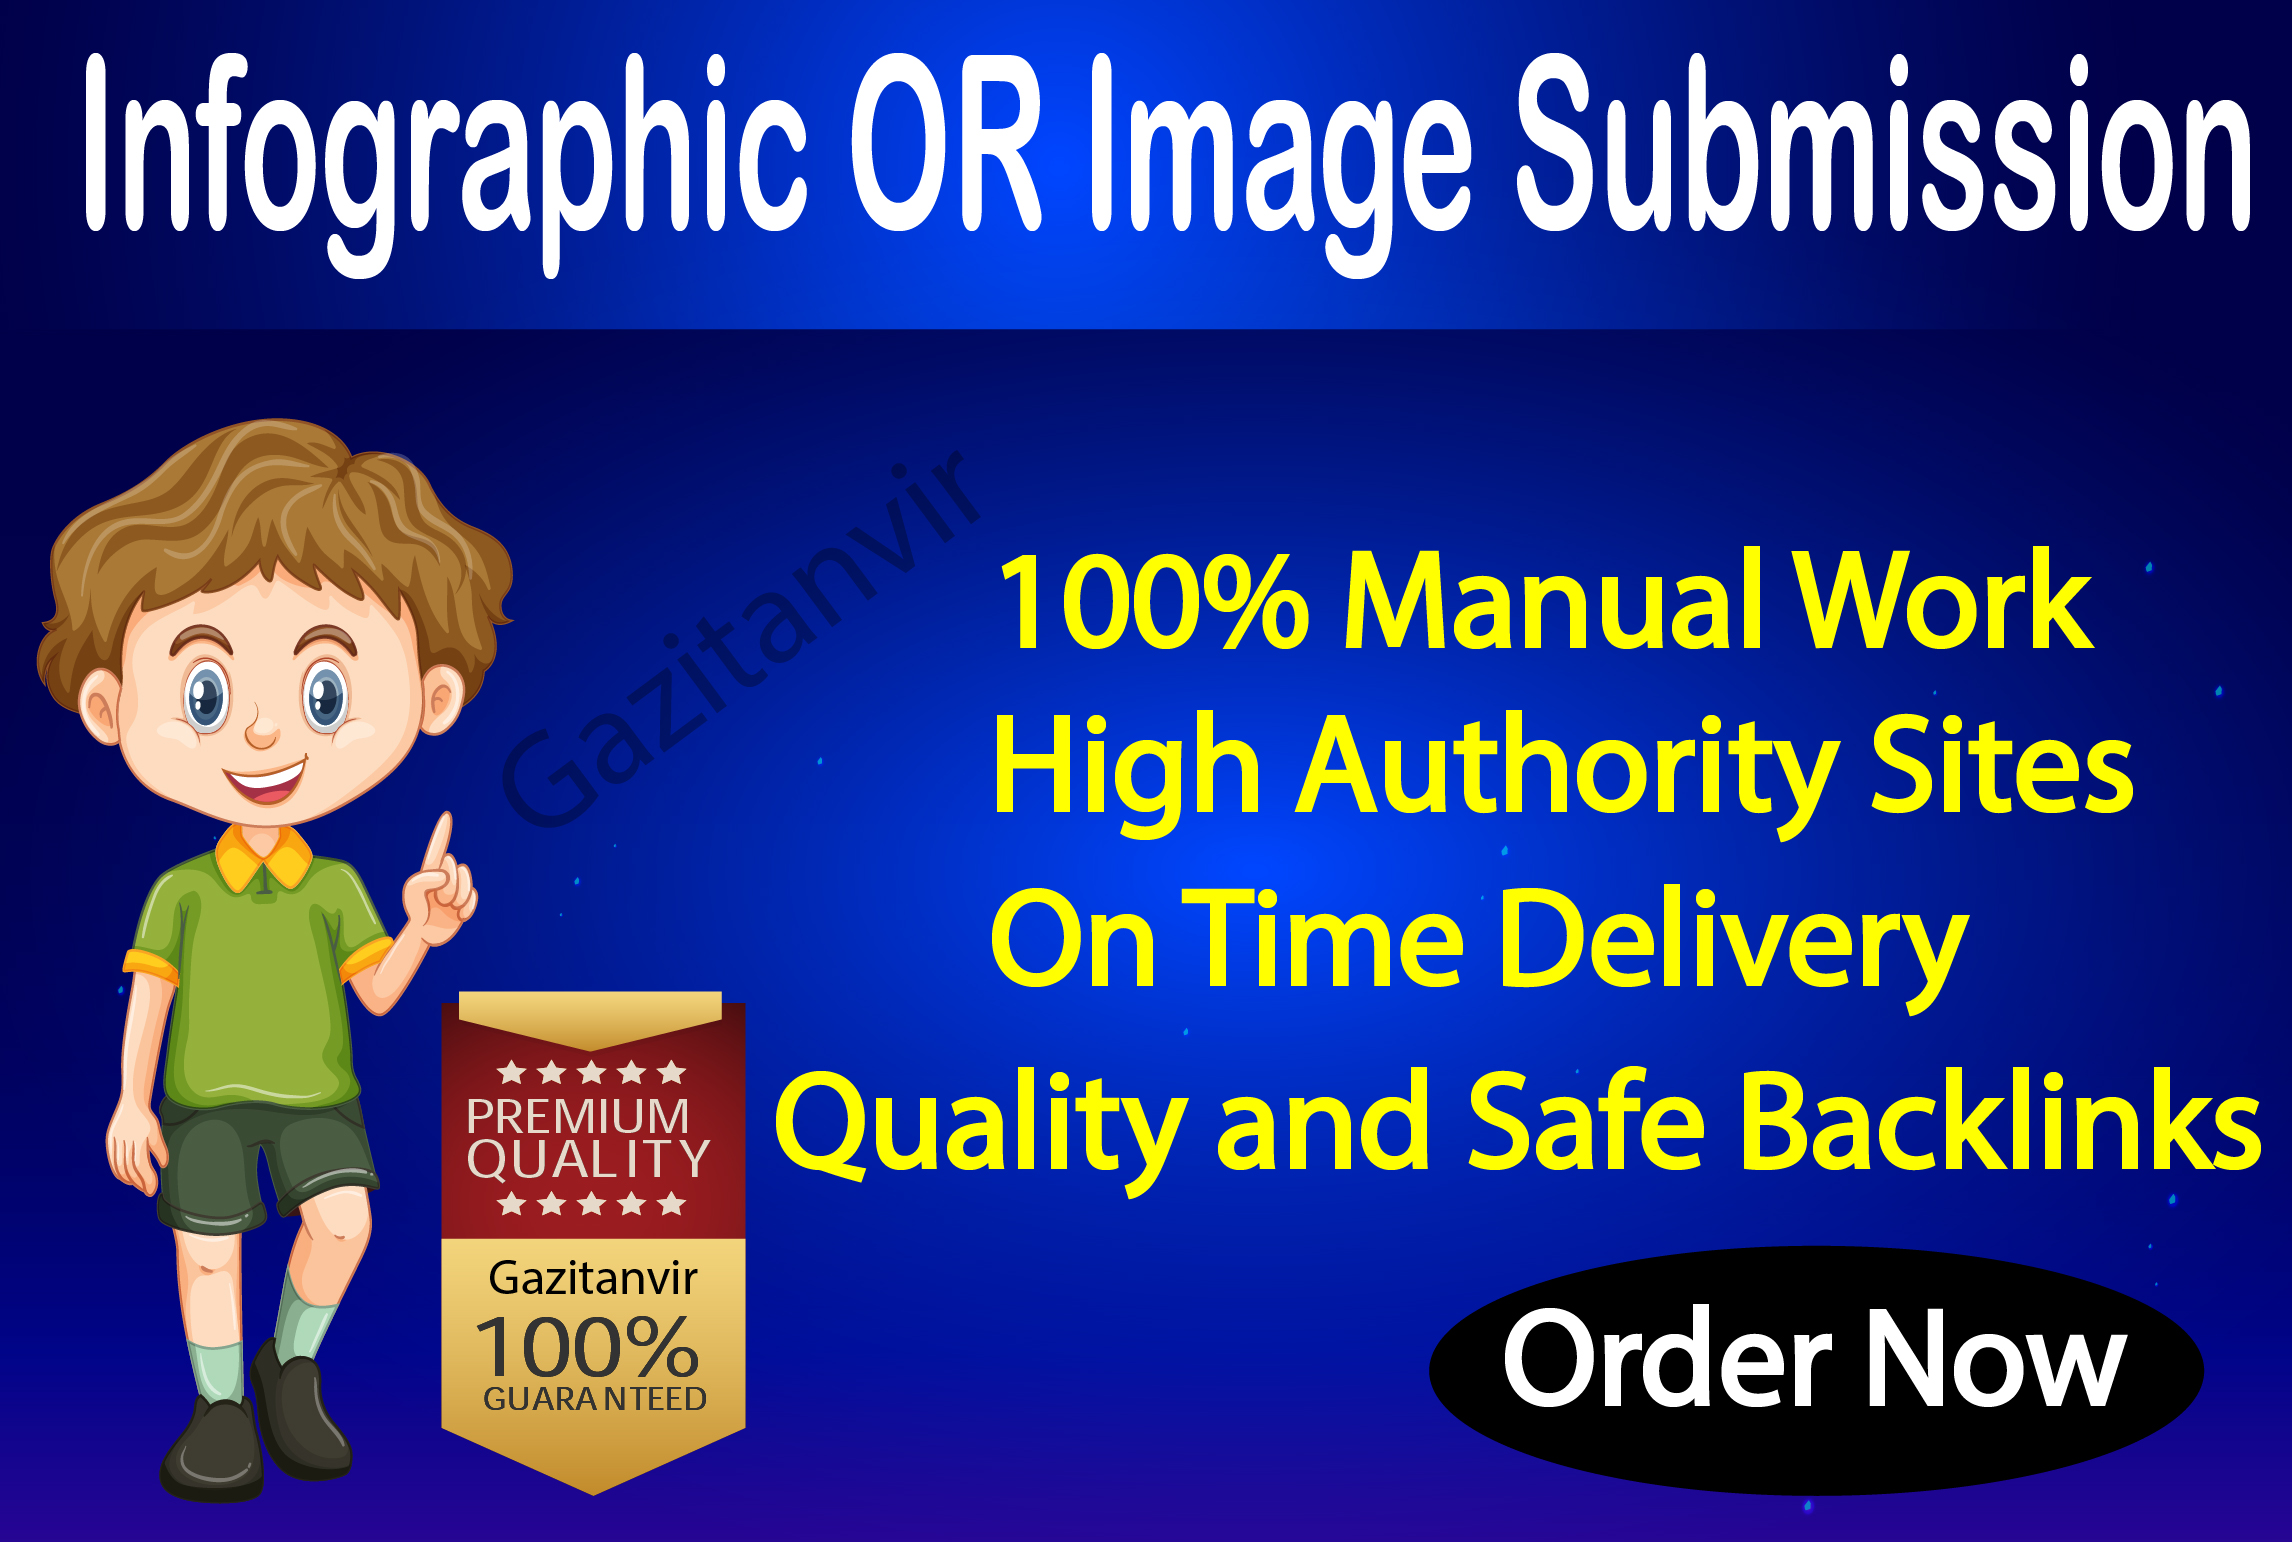 I will do 10 images or infographic submission on high-quality sites